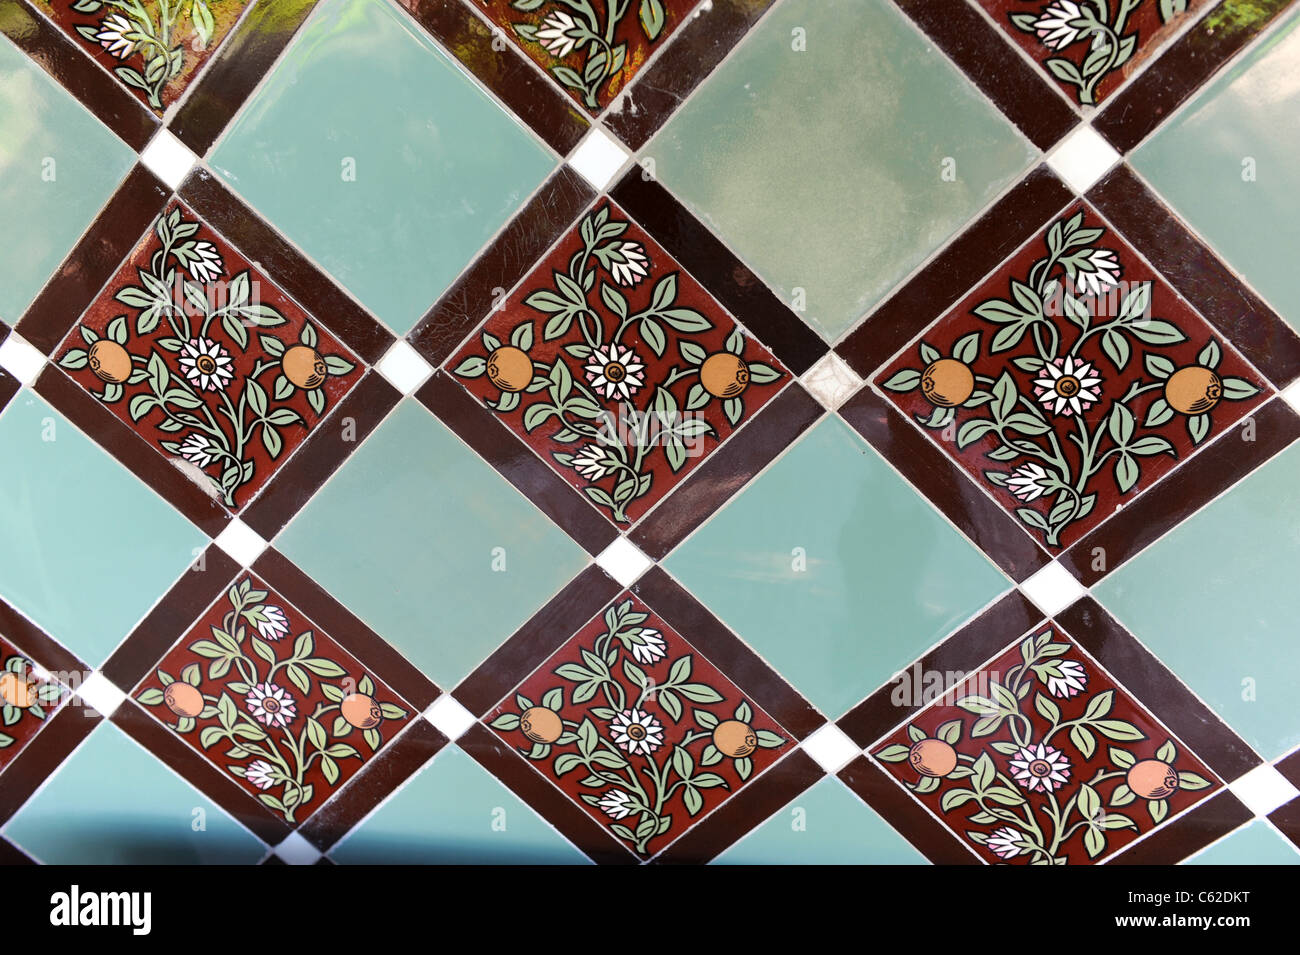 Victorian Ceramic Tiles High Resolution Stock Photography And Images Alamy